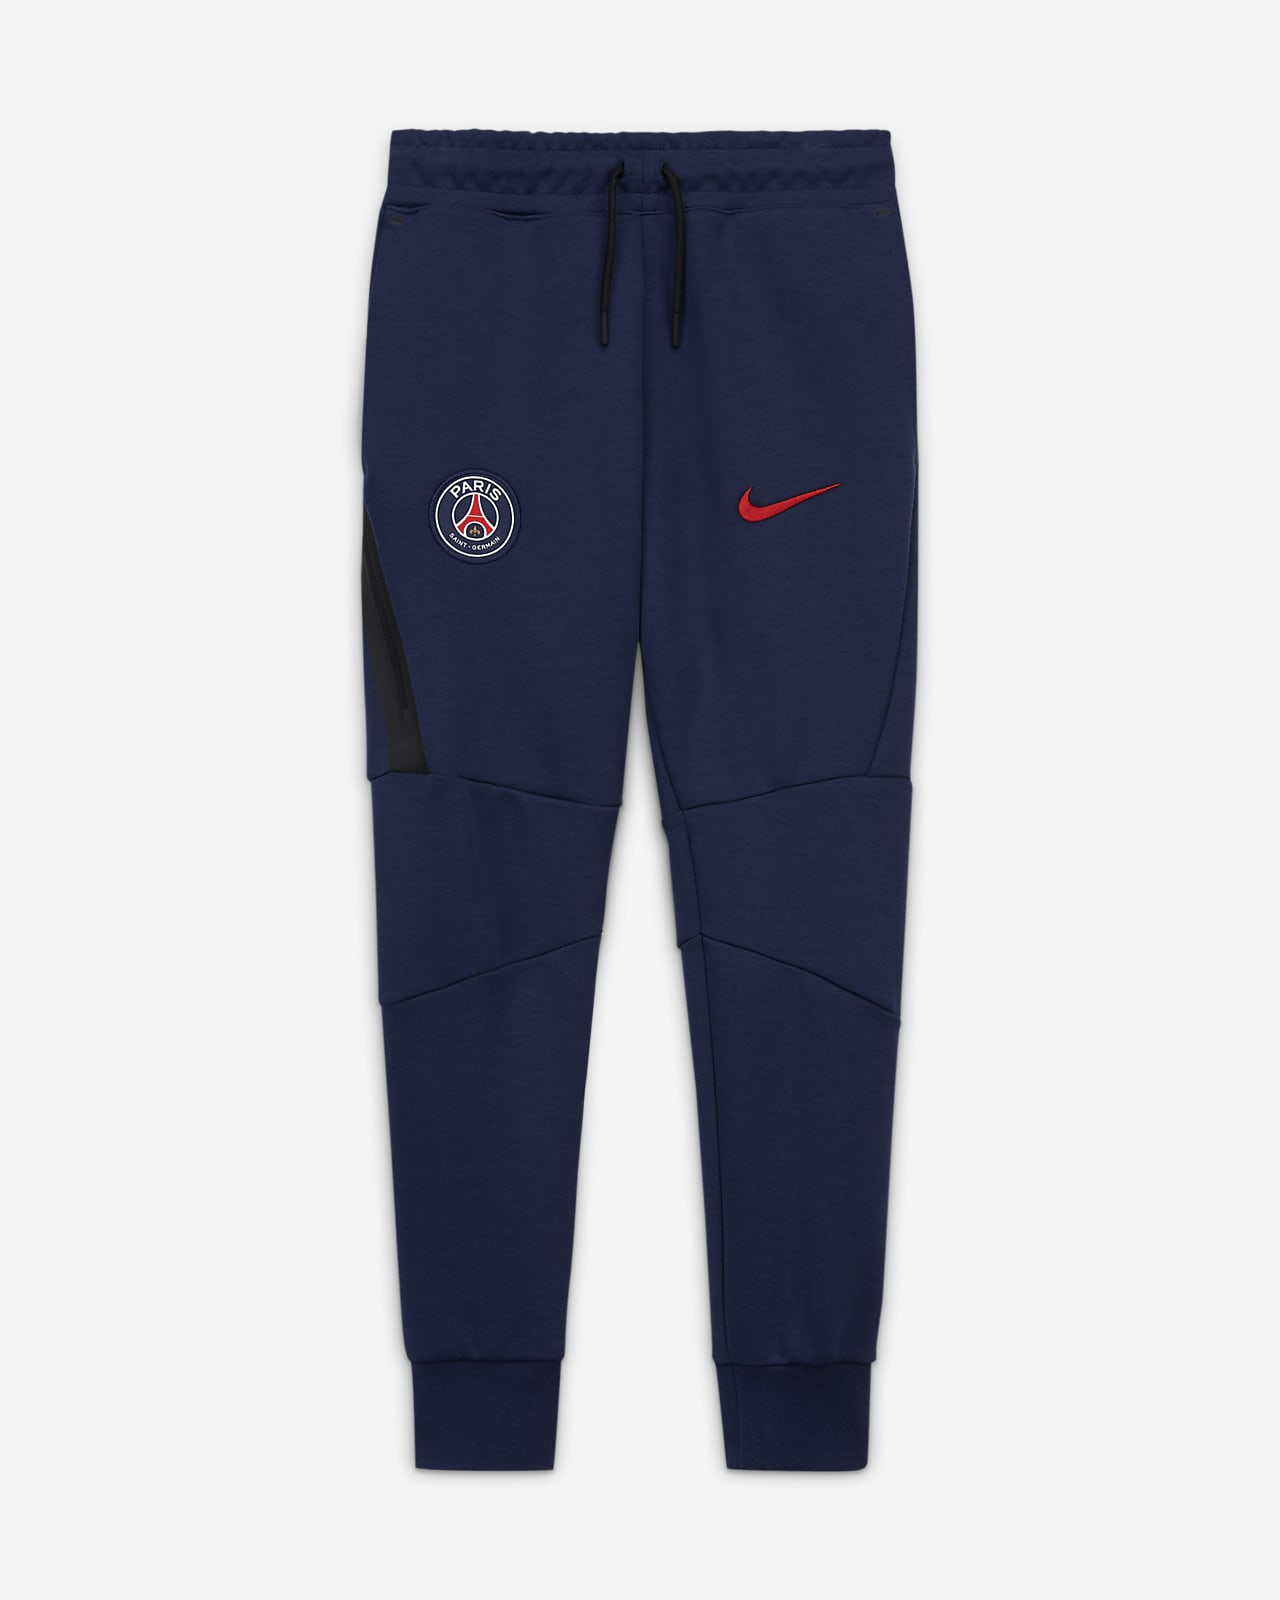 Paris Saint-Germain Older Kids' Fleece Pants